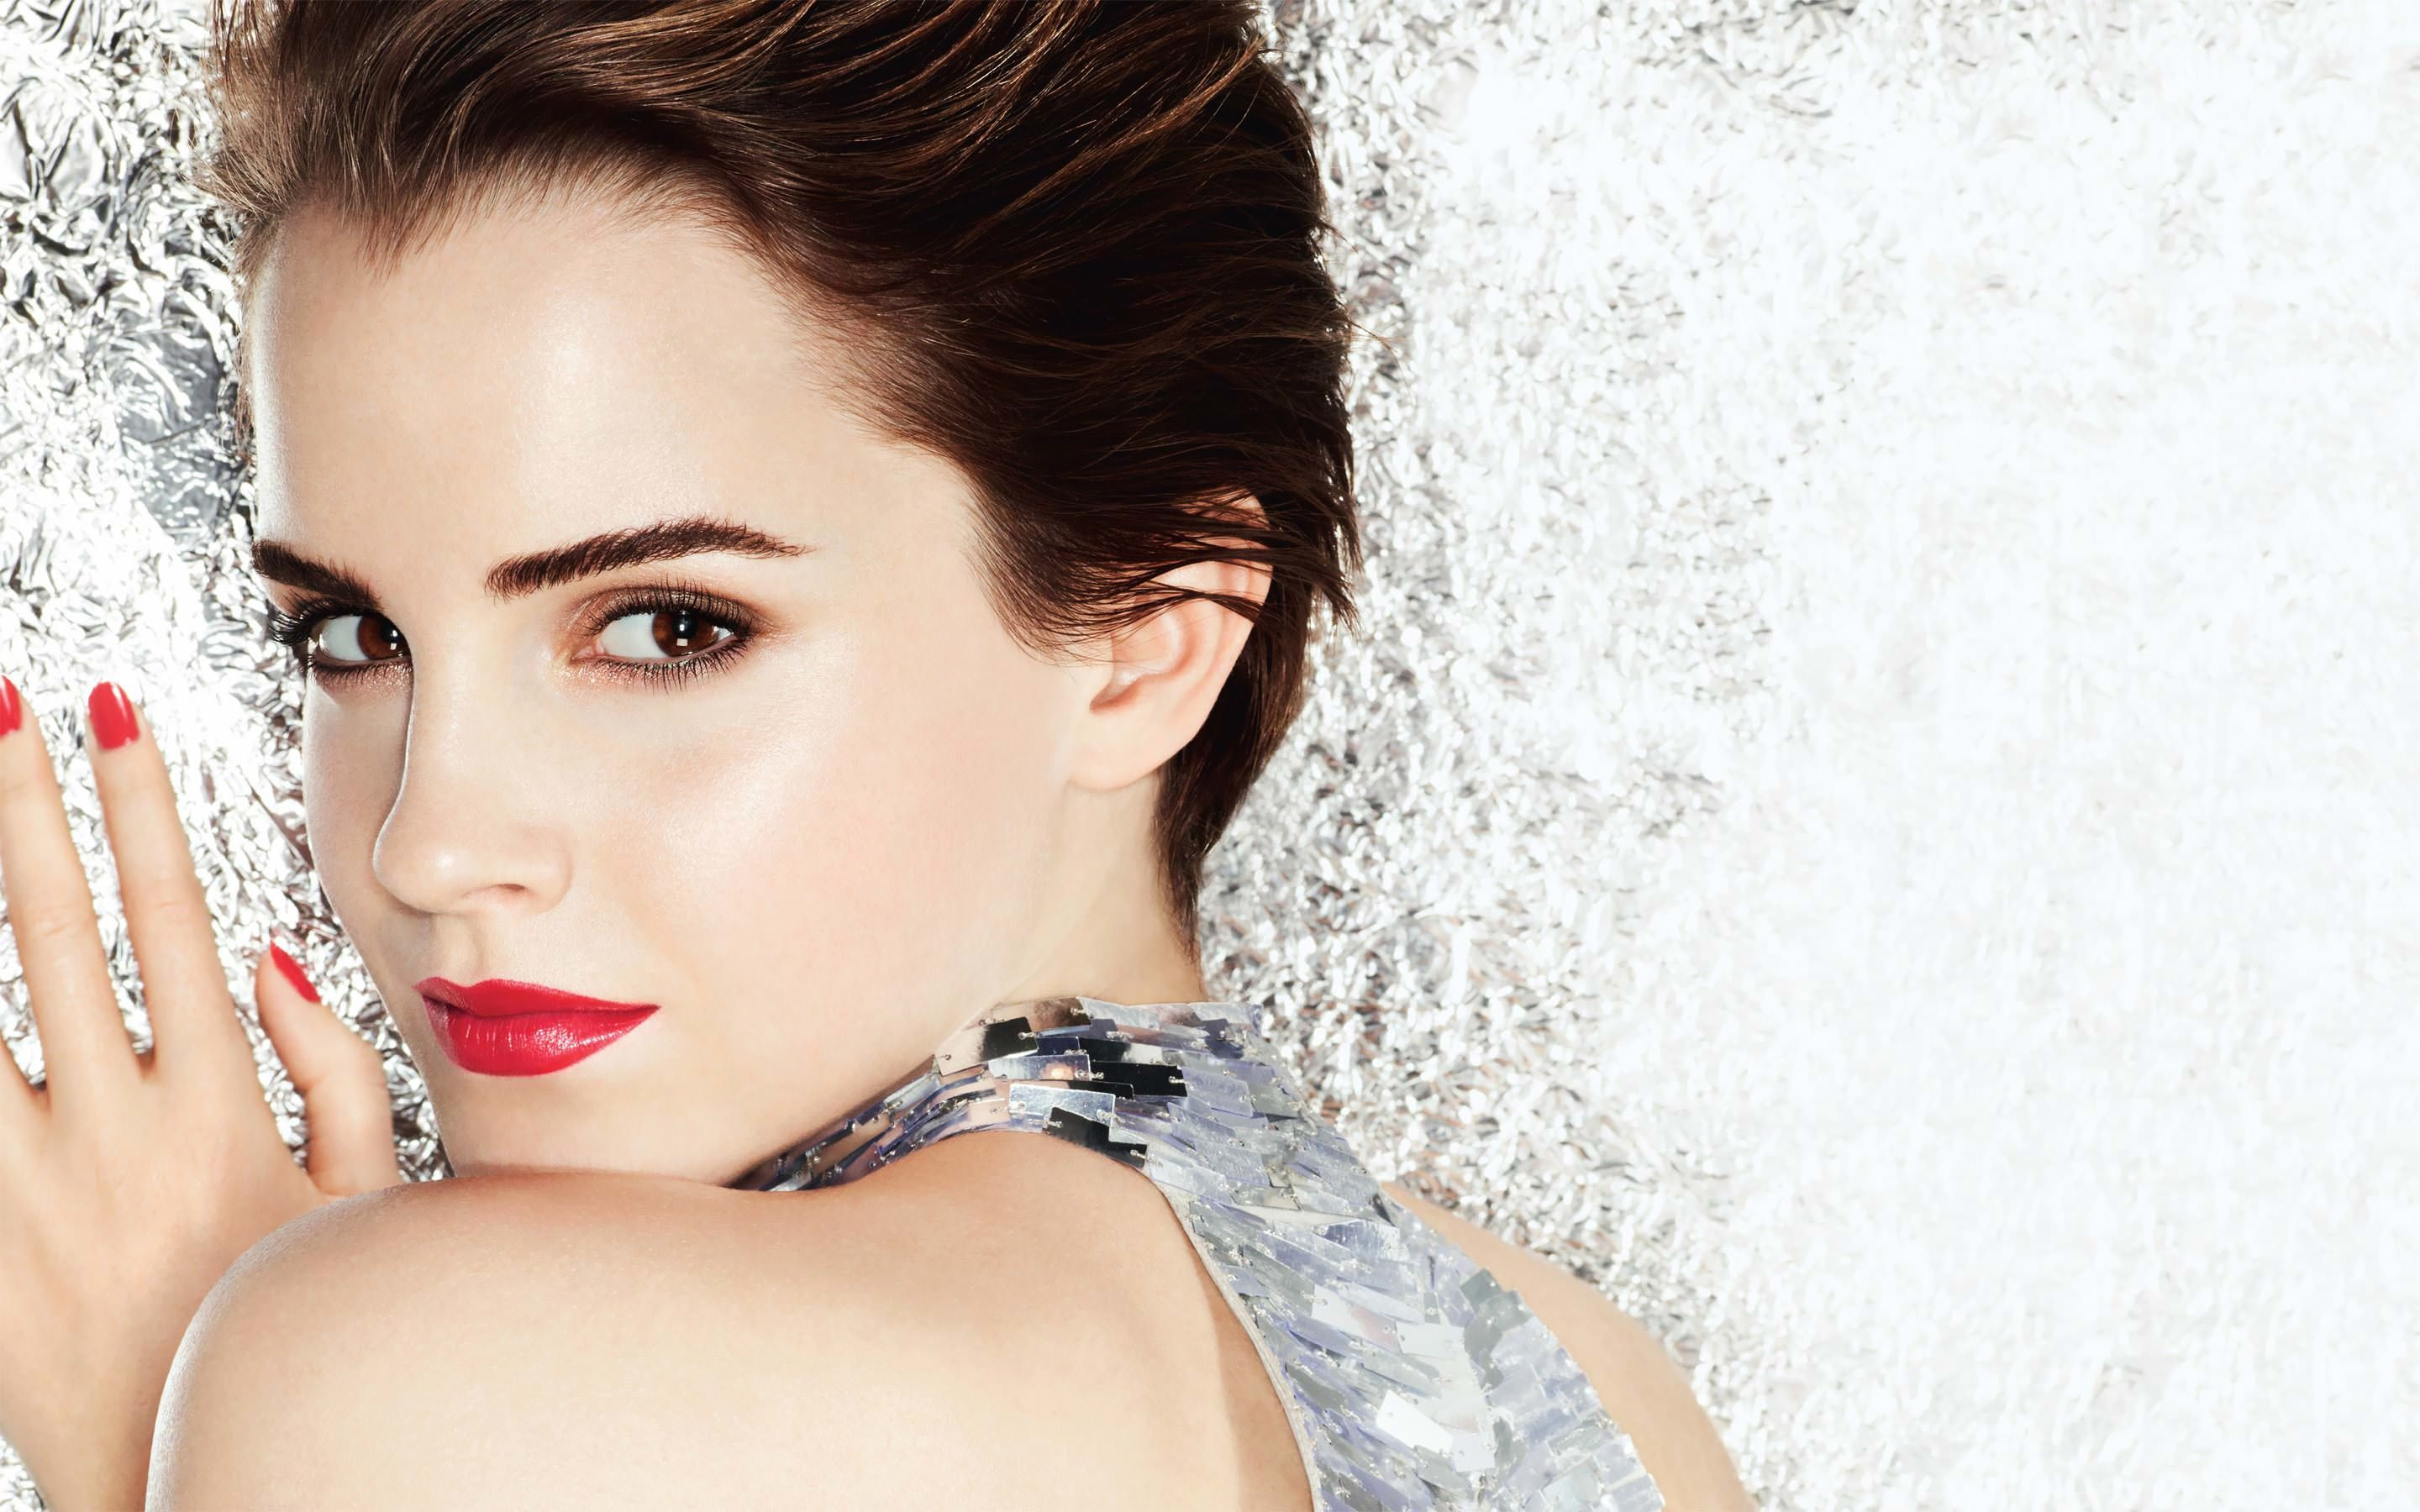 Emma Watson Posing Wallpaper for Desktop 2880x1800